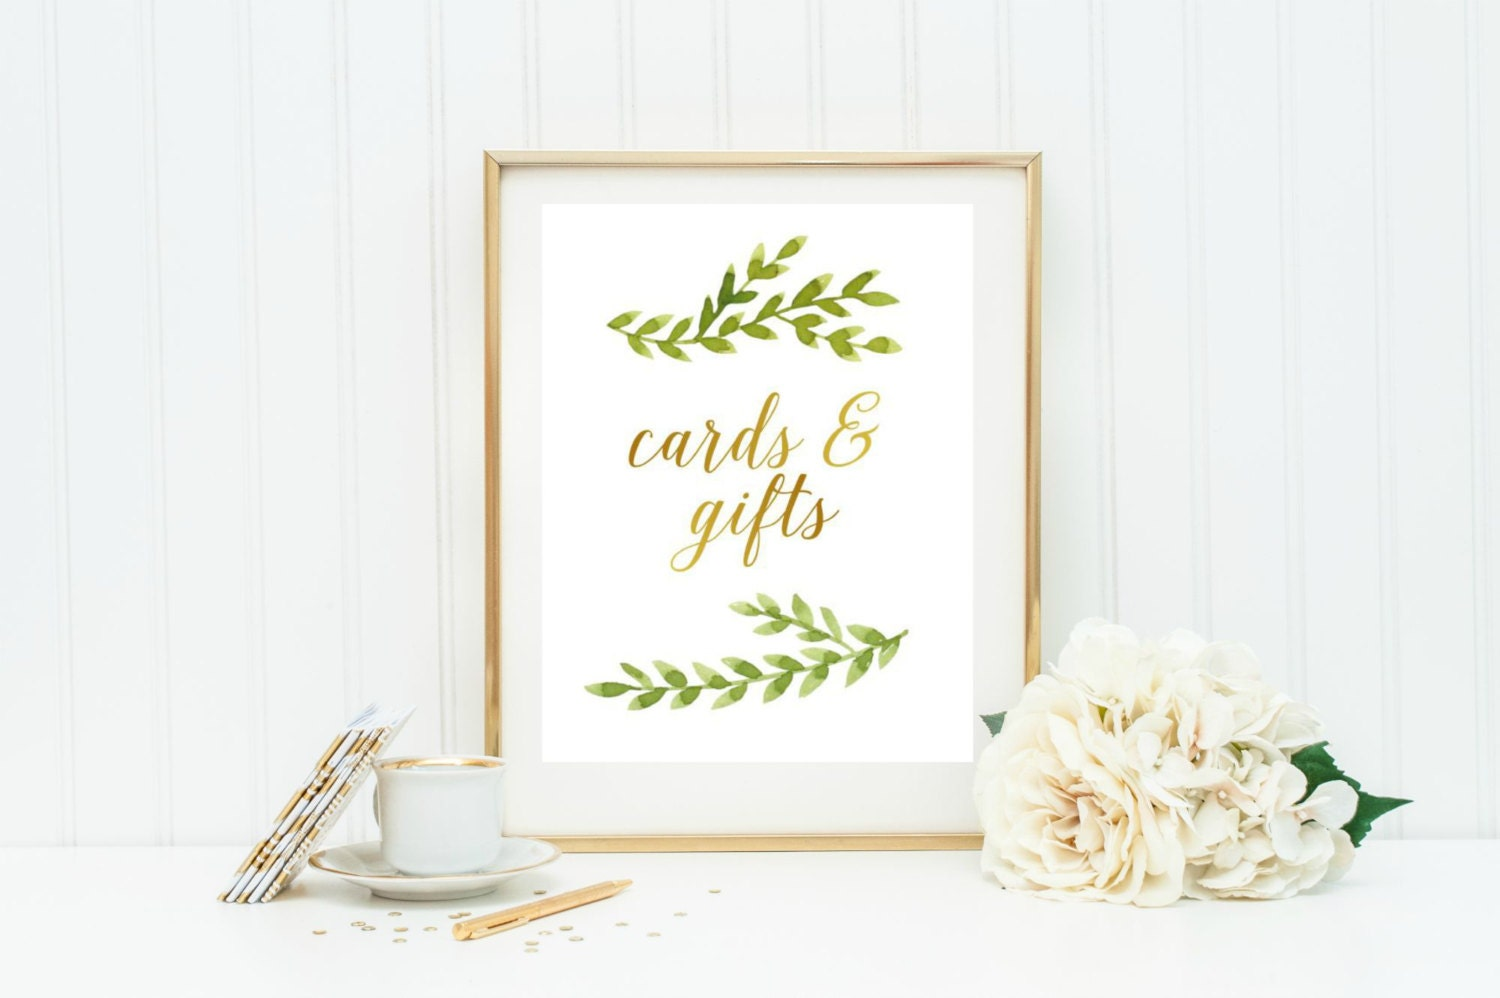 Wedding Gift Cards Online: Cards And Gifts Wedding Sign Printable Instant Download Card